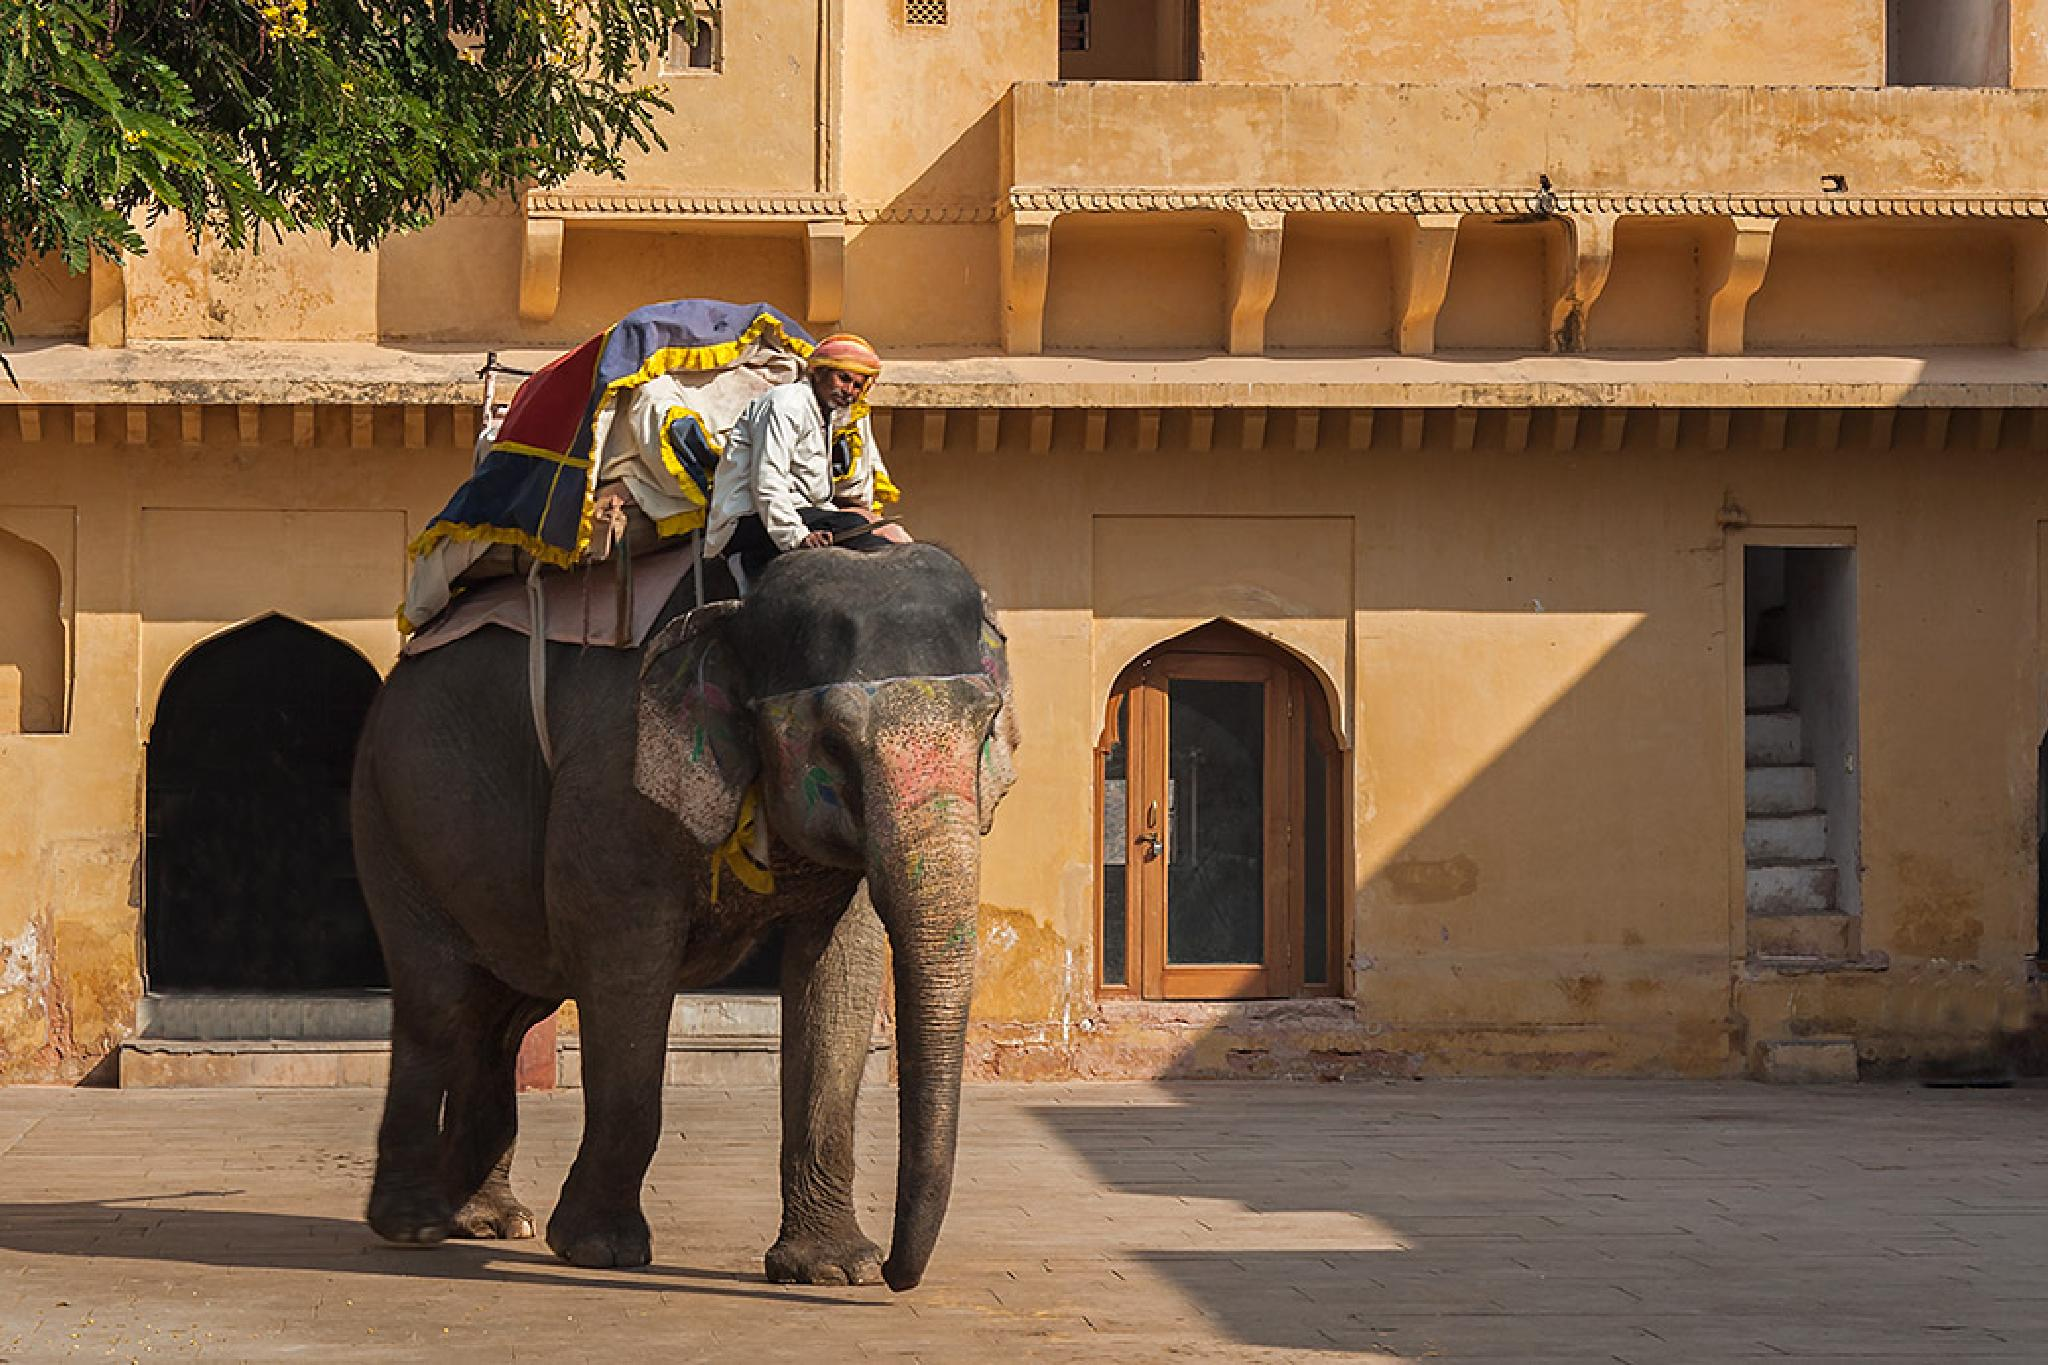 Elephant, Amer Fort Jaipur by Sotiris Siomis